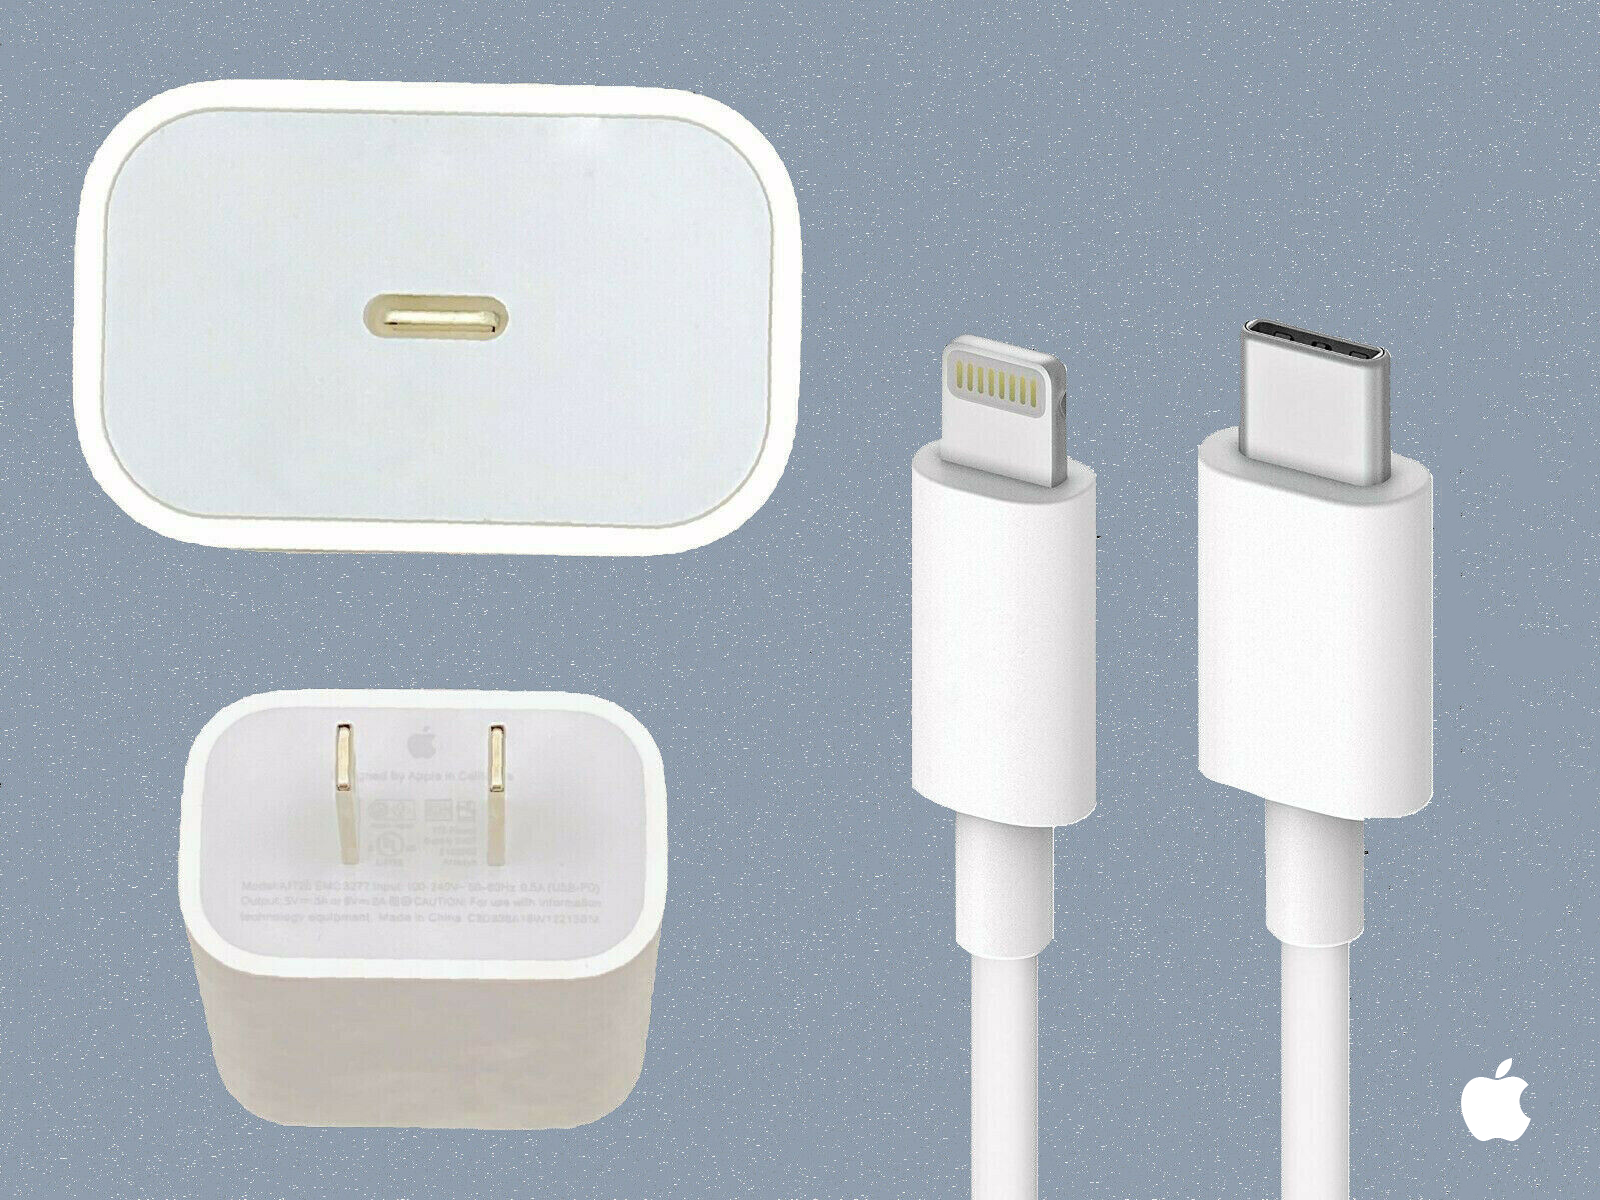 Original Apple 18w Fast Charger Usb C Lightning Cable Iphone 11 Pro Max In 2020 Iphone Cable Iphone Background Vintage Lightning Cable